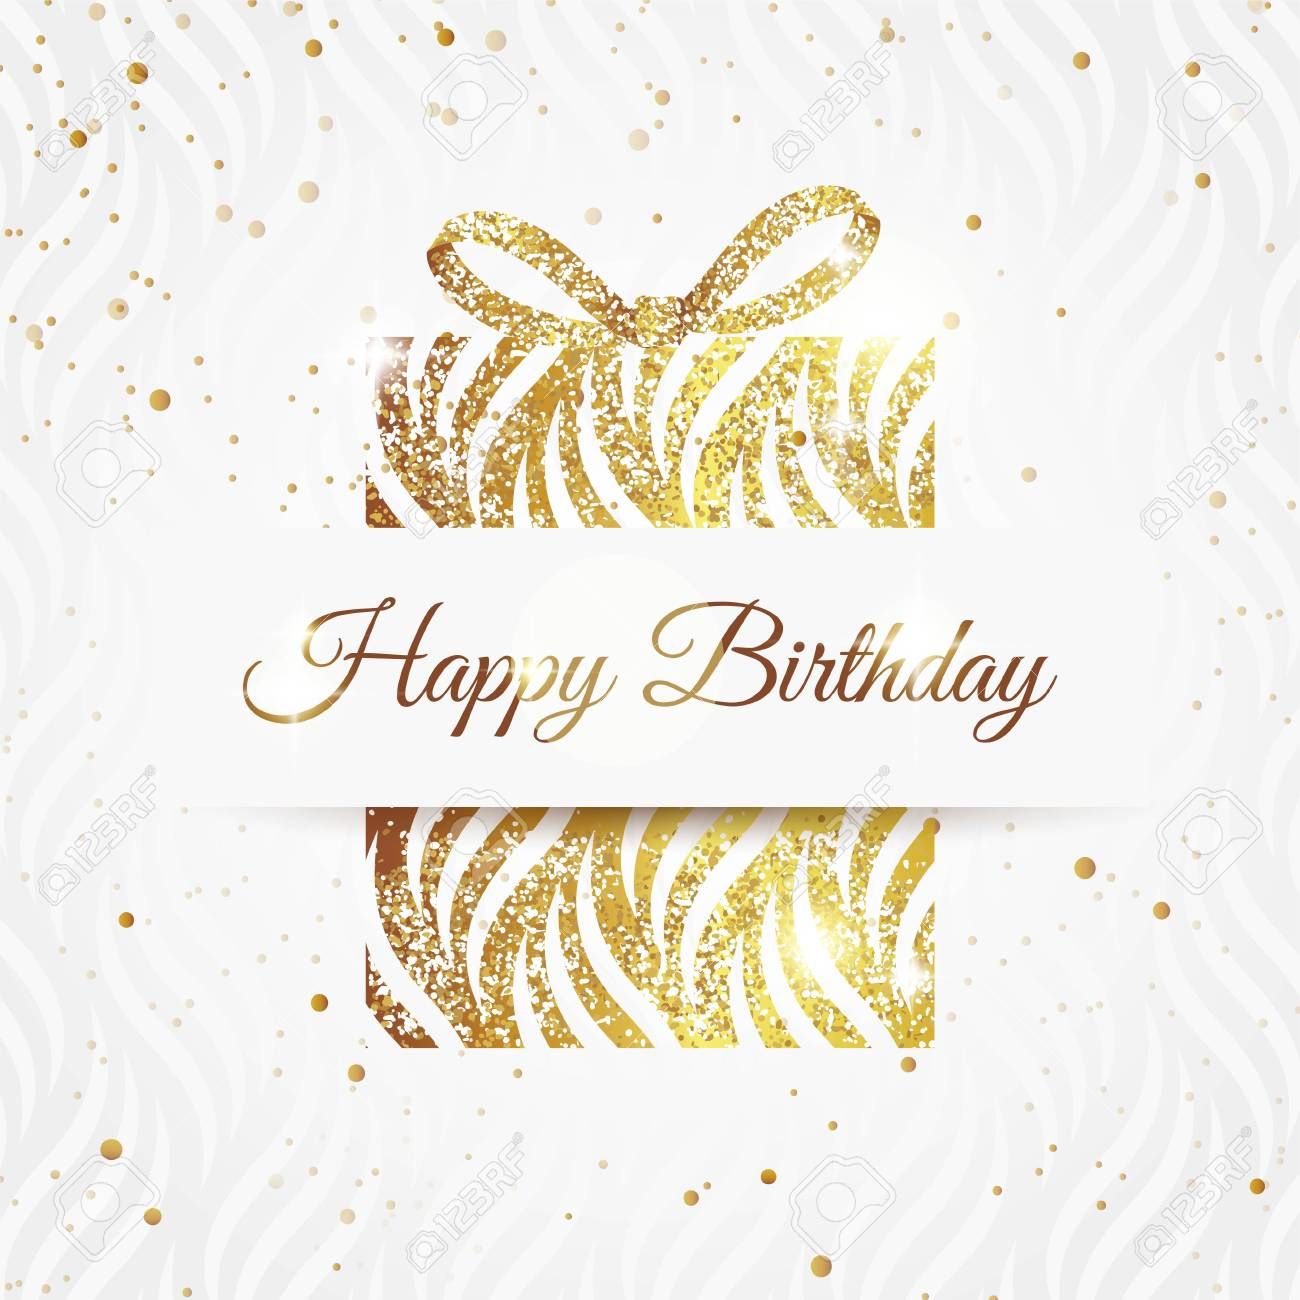 Happy Birthday Elegant Card With Golden Gift And Bow Birthday